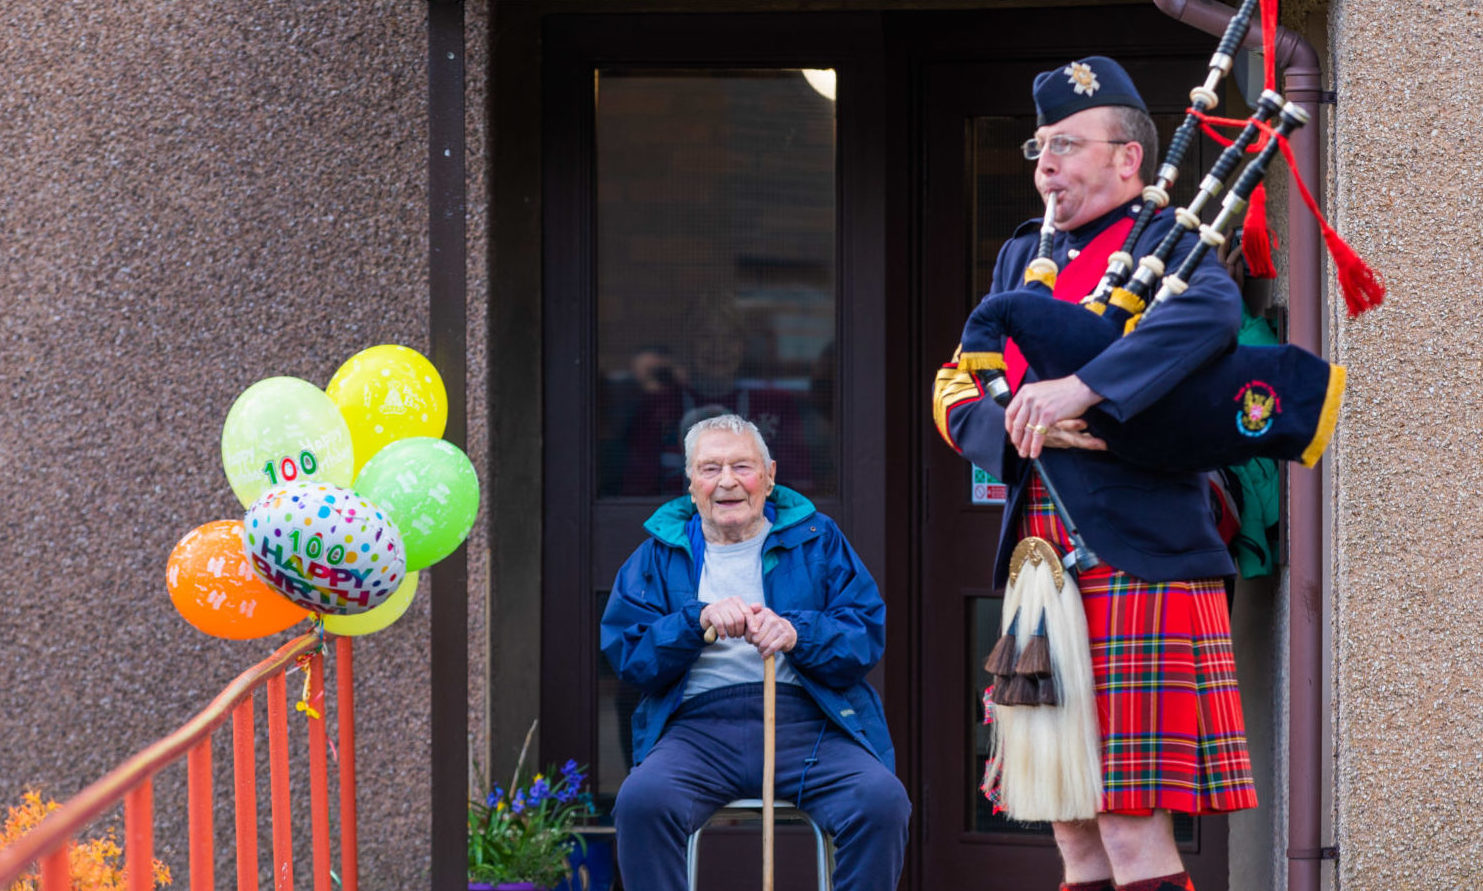 Fred Waters celebrates his 100th birthday in lockdown at his Bridge of Earn home